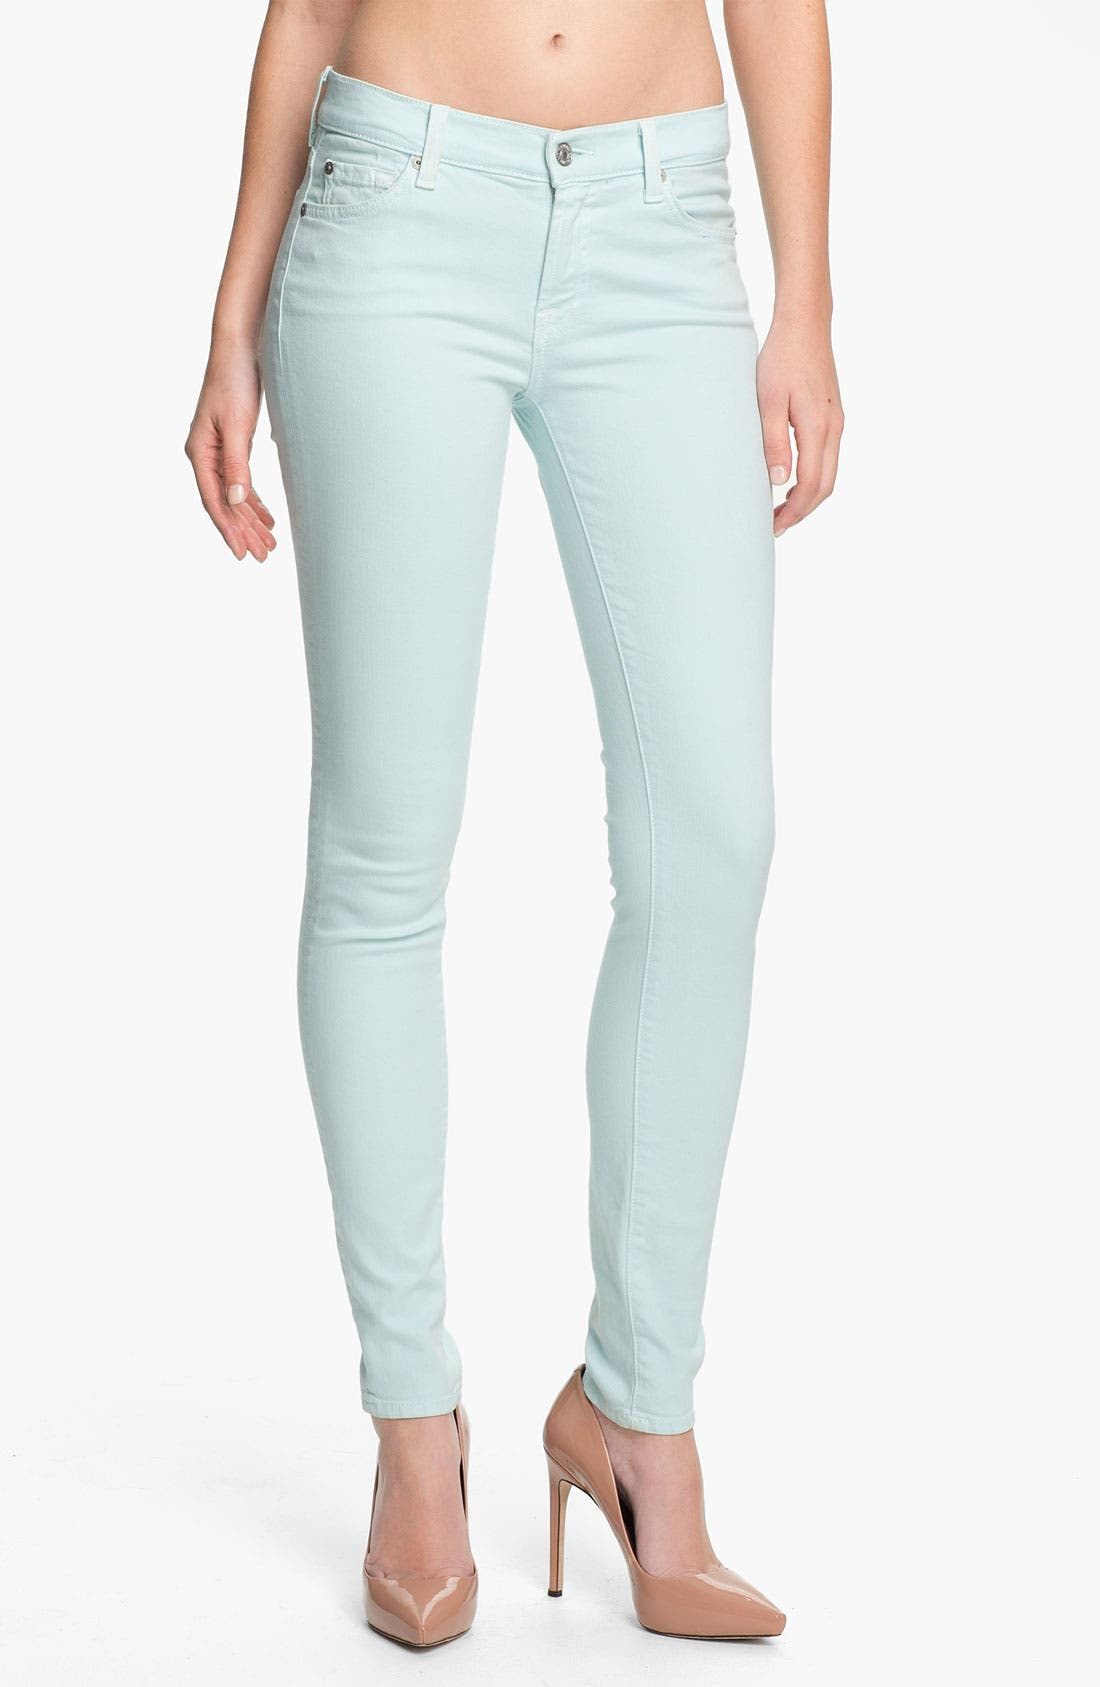 Alternate Image 1 Selected - 7 For All Mankind® 'Slim Illusion' Overdyed Skinny Stretch Jeans (Sea Glass)